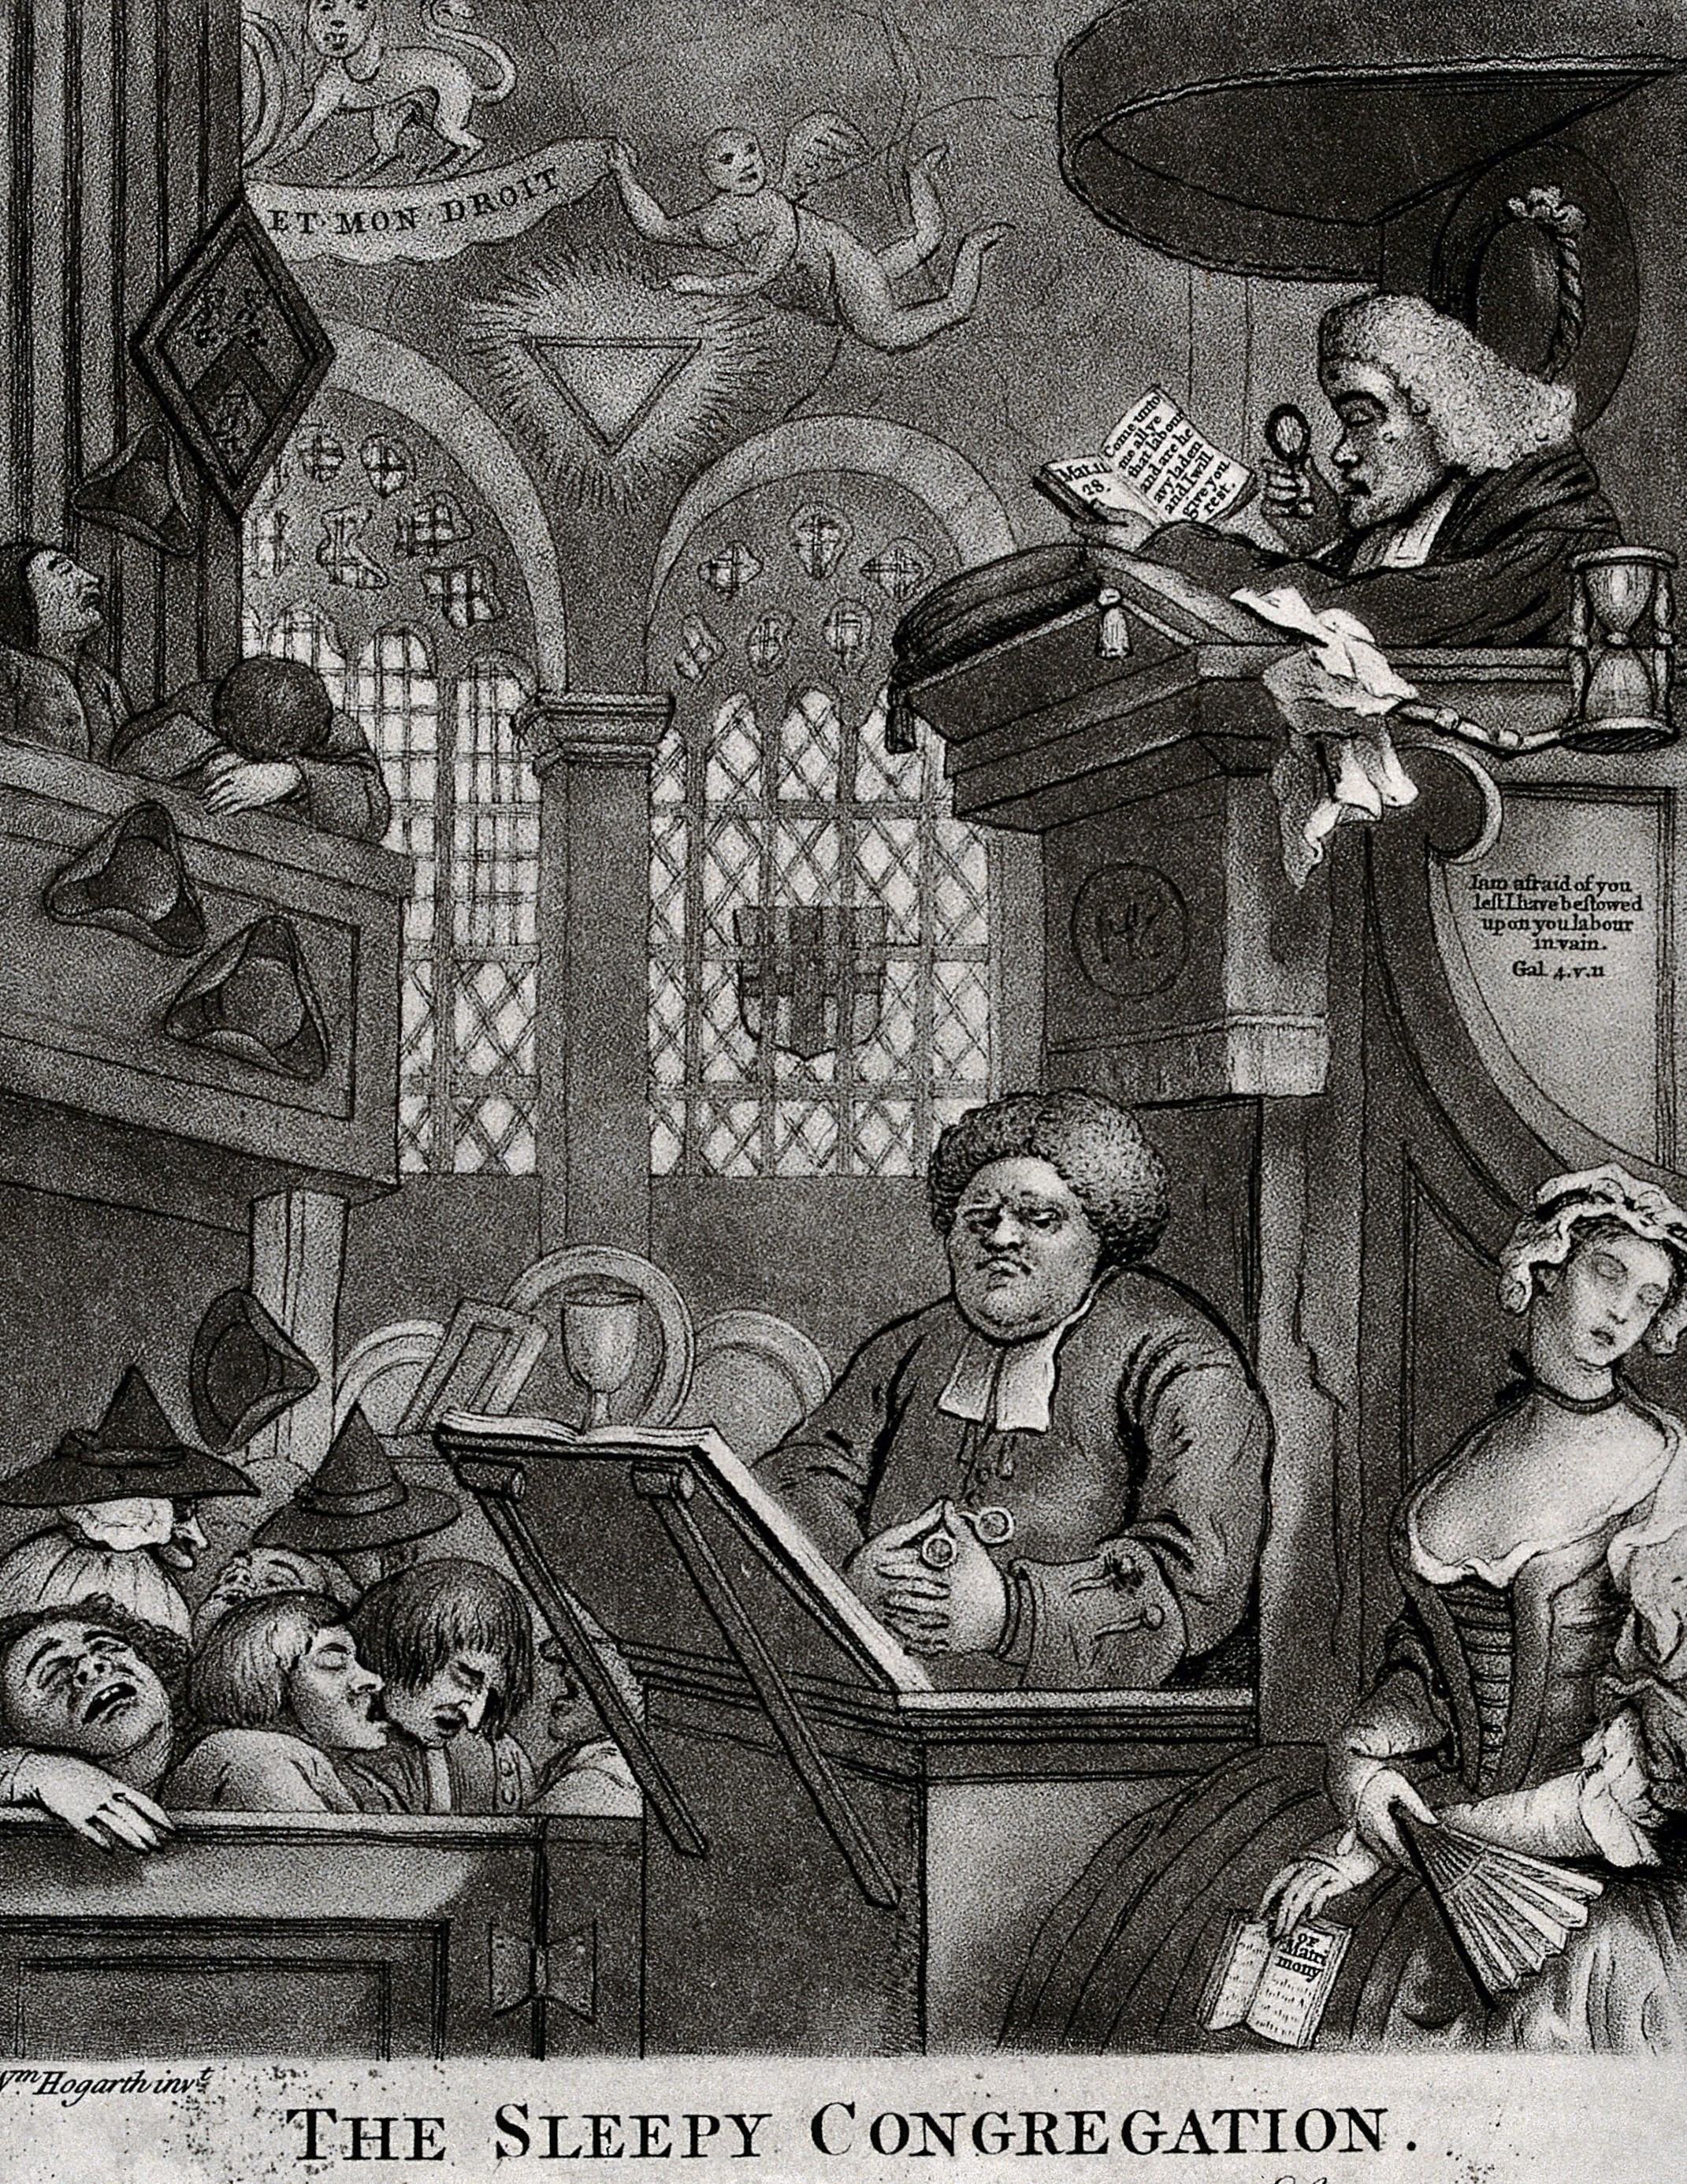 In this image a clergyman reads the sermon with the aid of a magnifying glass to a sleeping congregation while another clergyman ogles a sleeping woman.